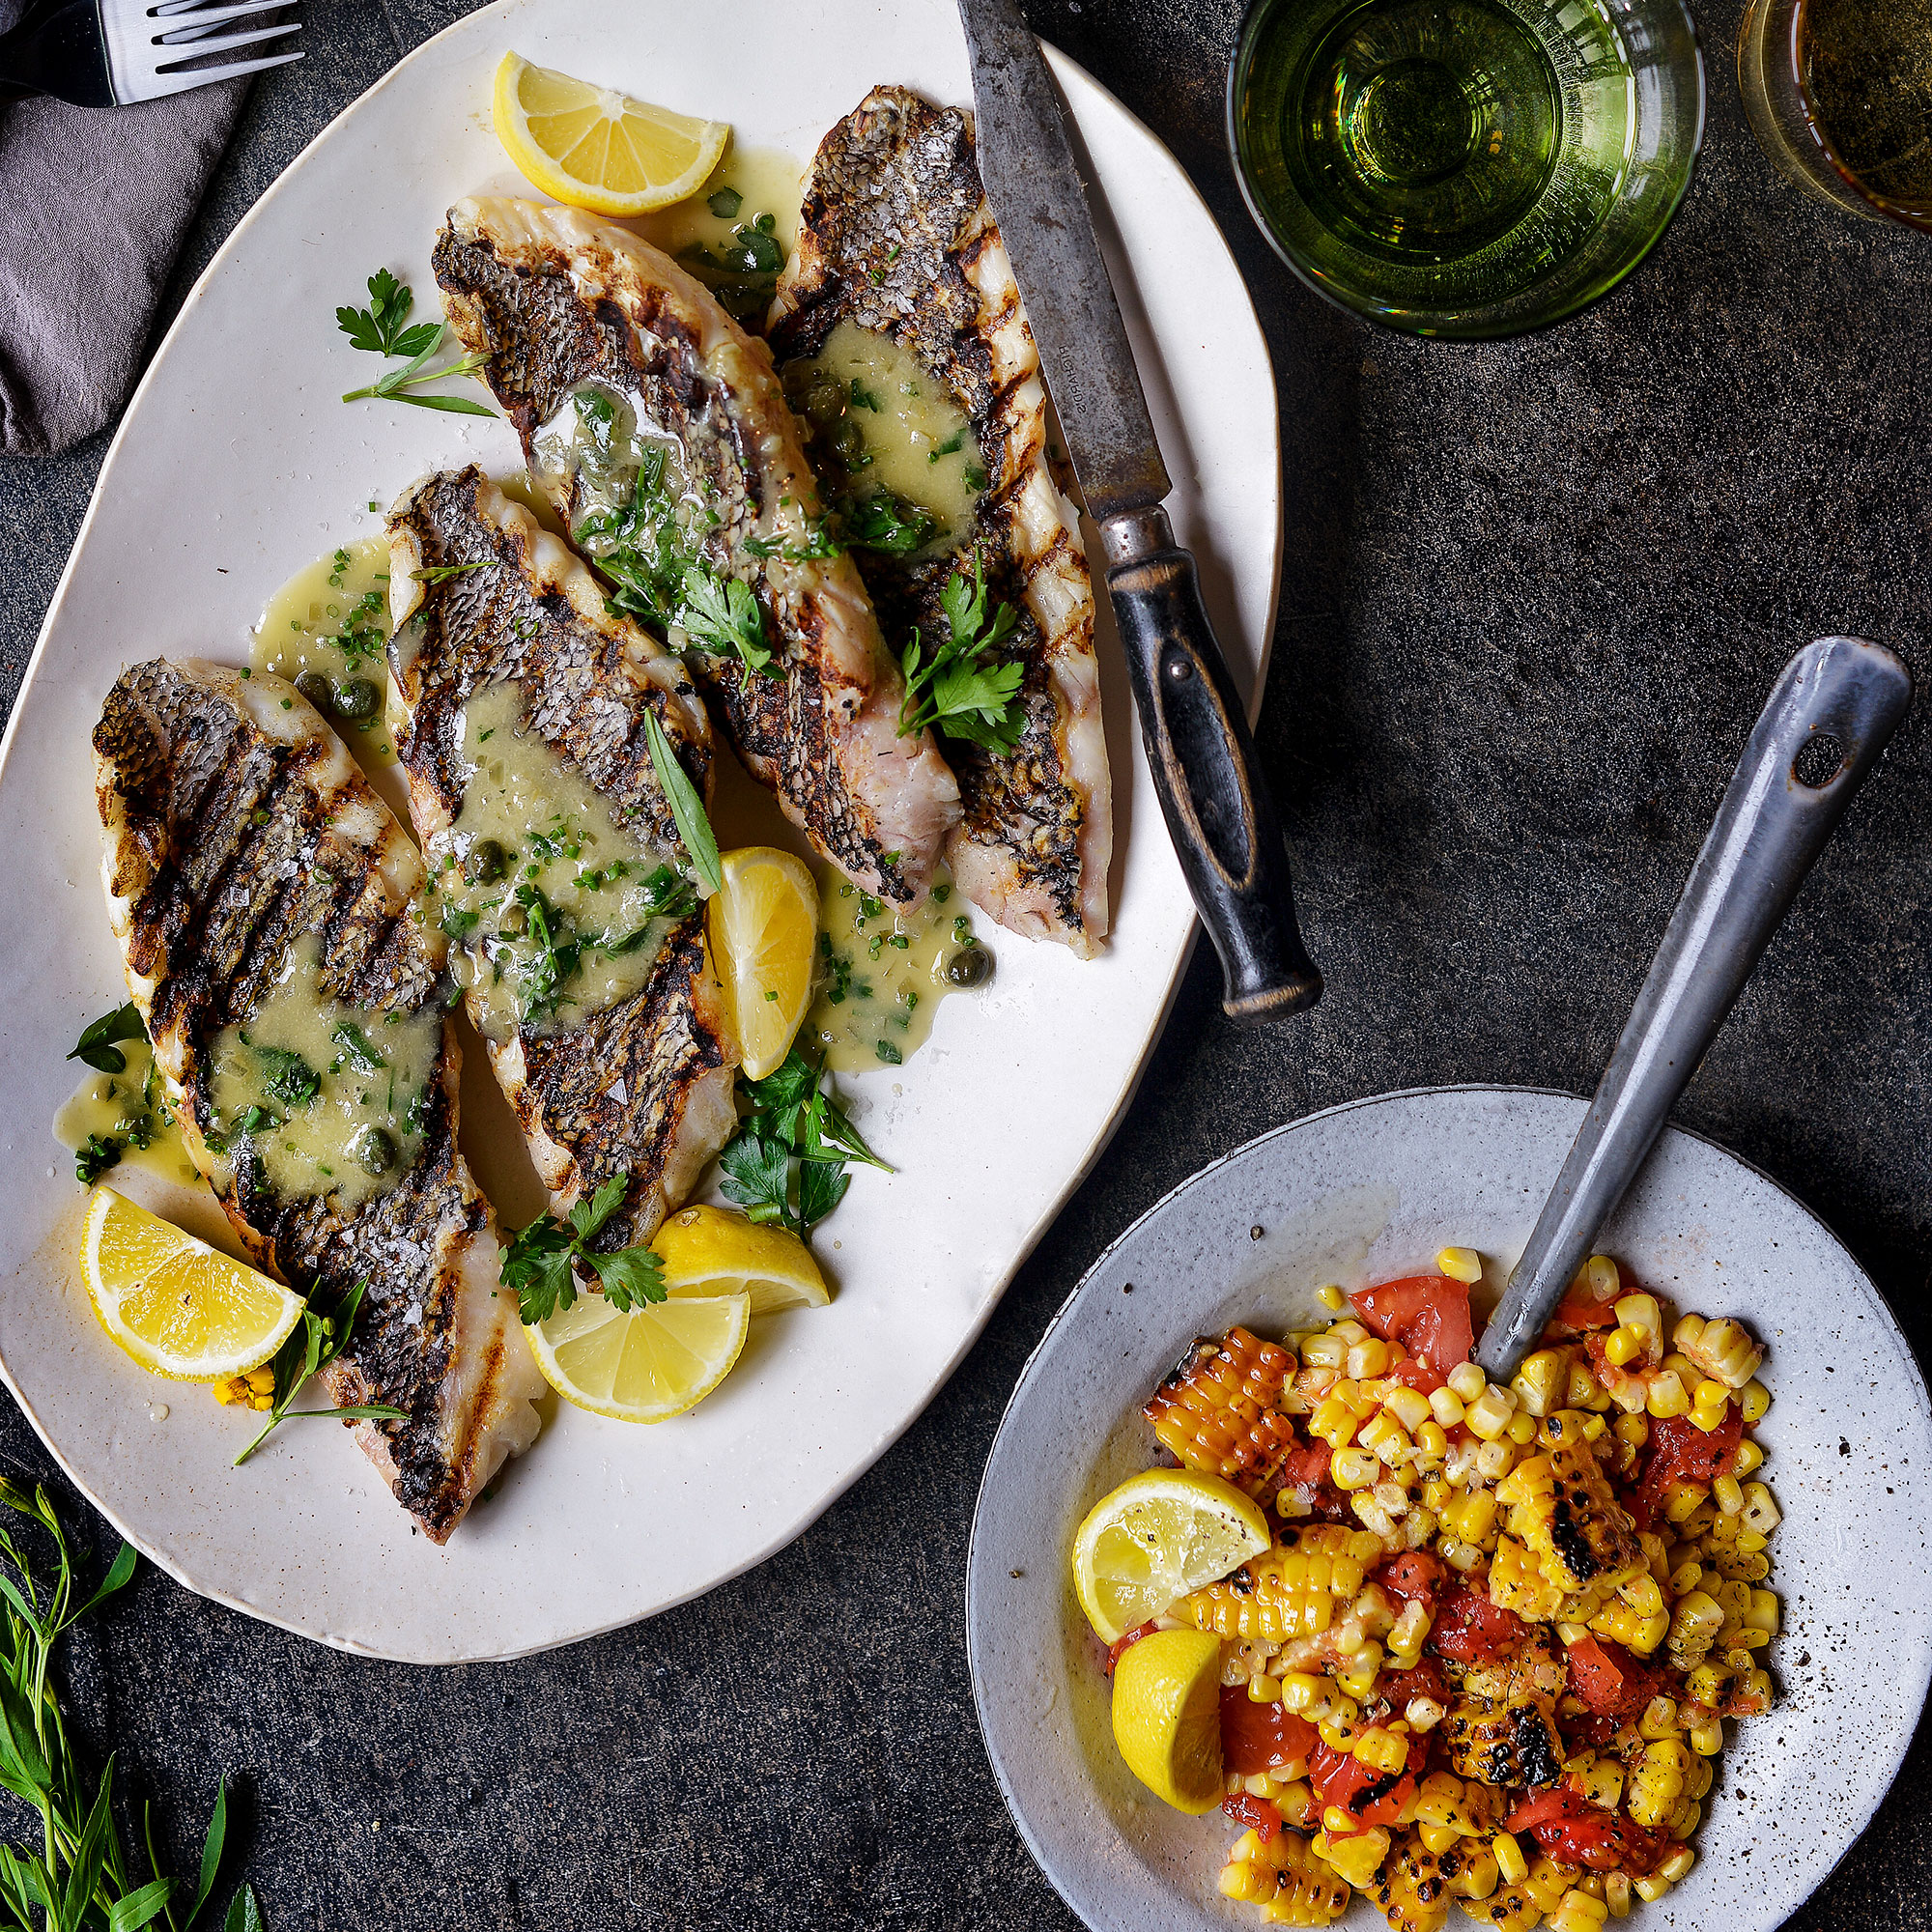 Grilled Sea Bass with Charred Tomato & Corn Salad